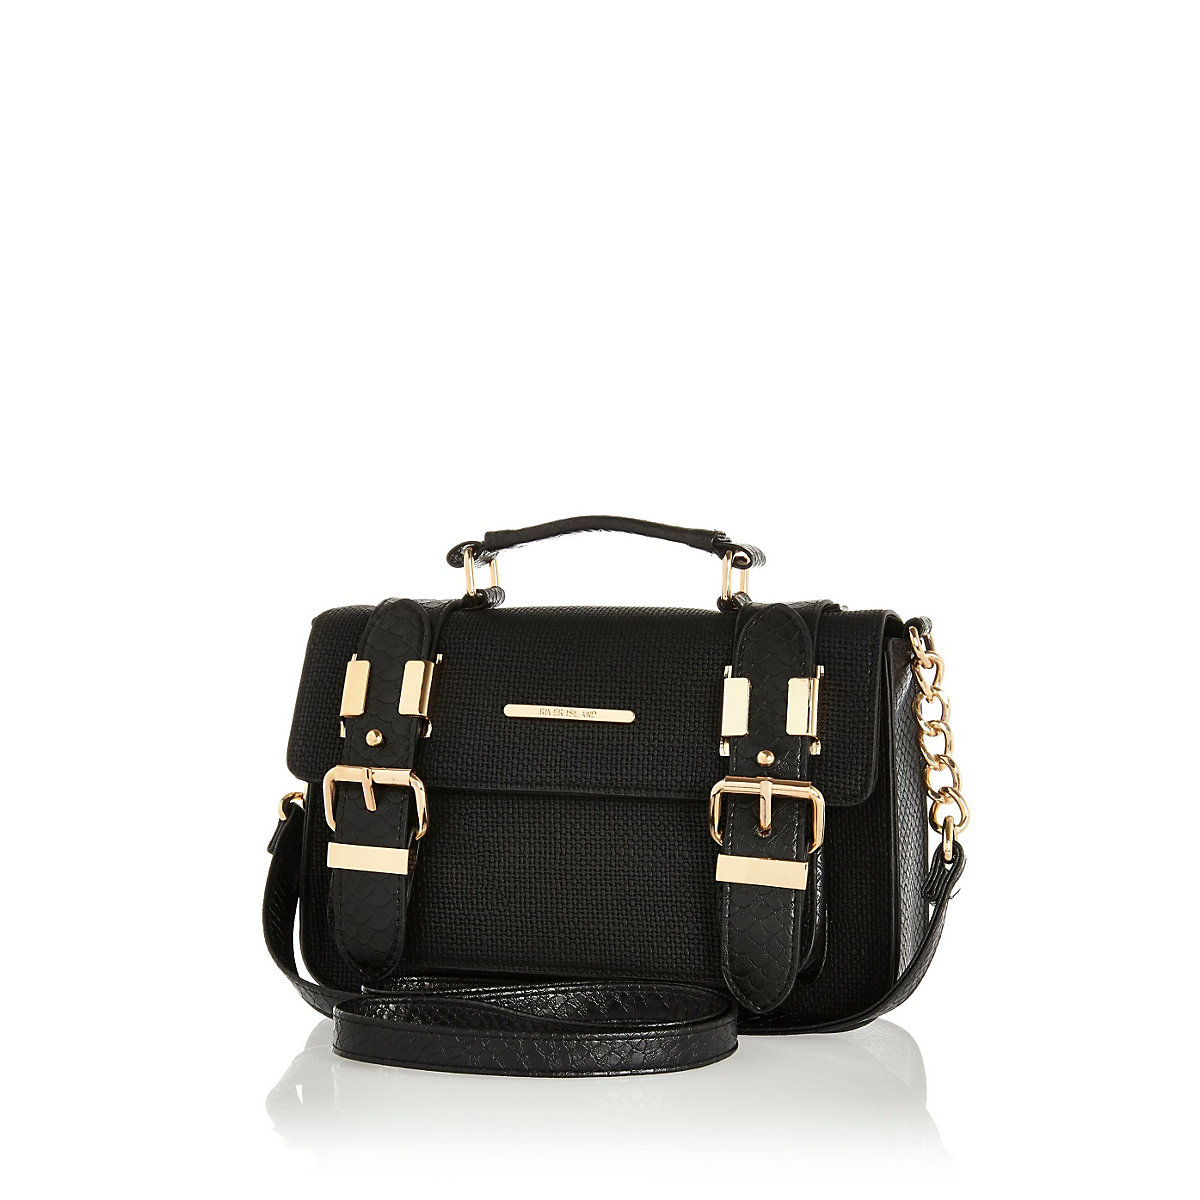 Black textured mini satchel